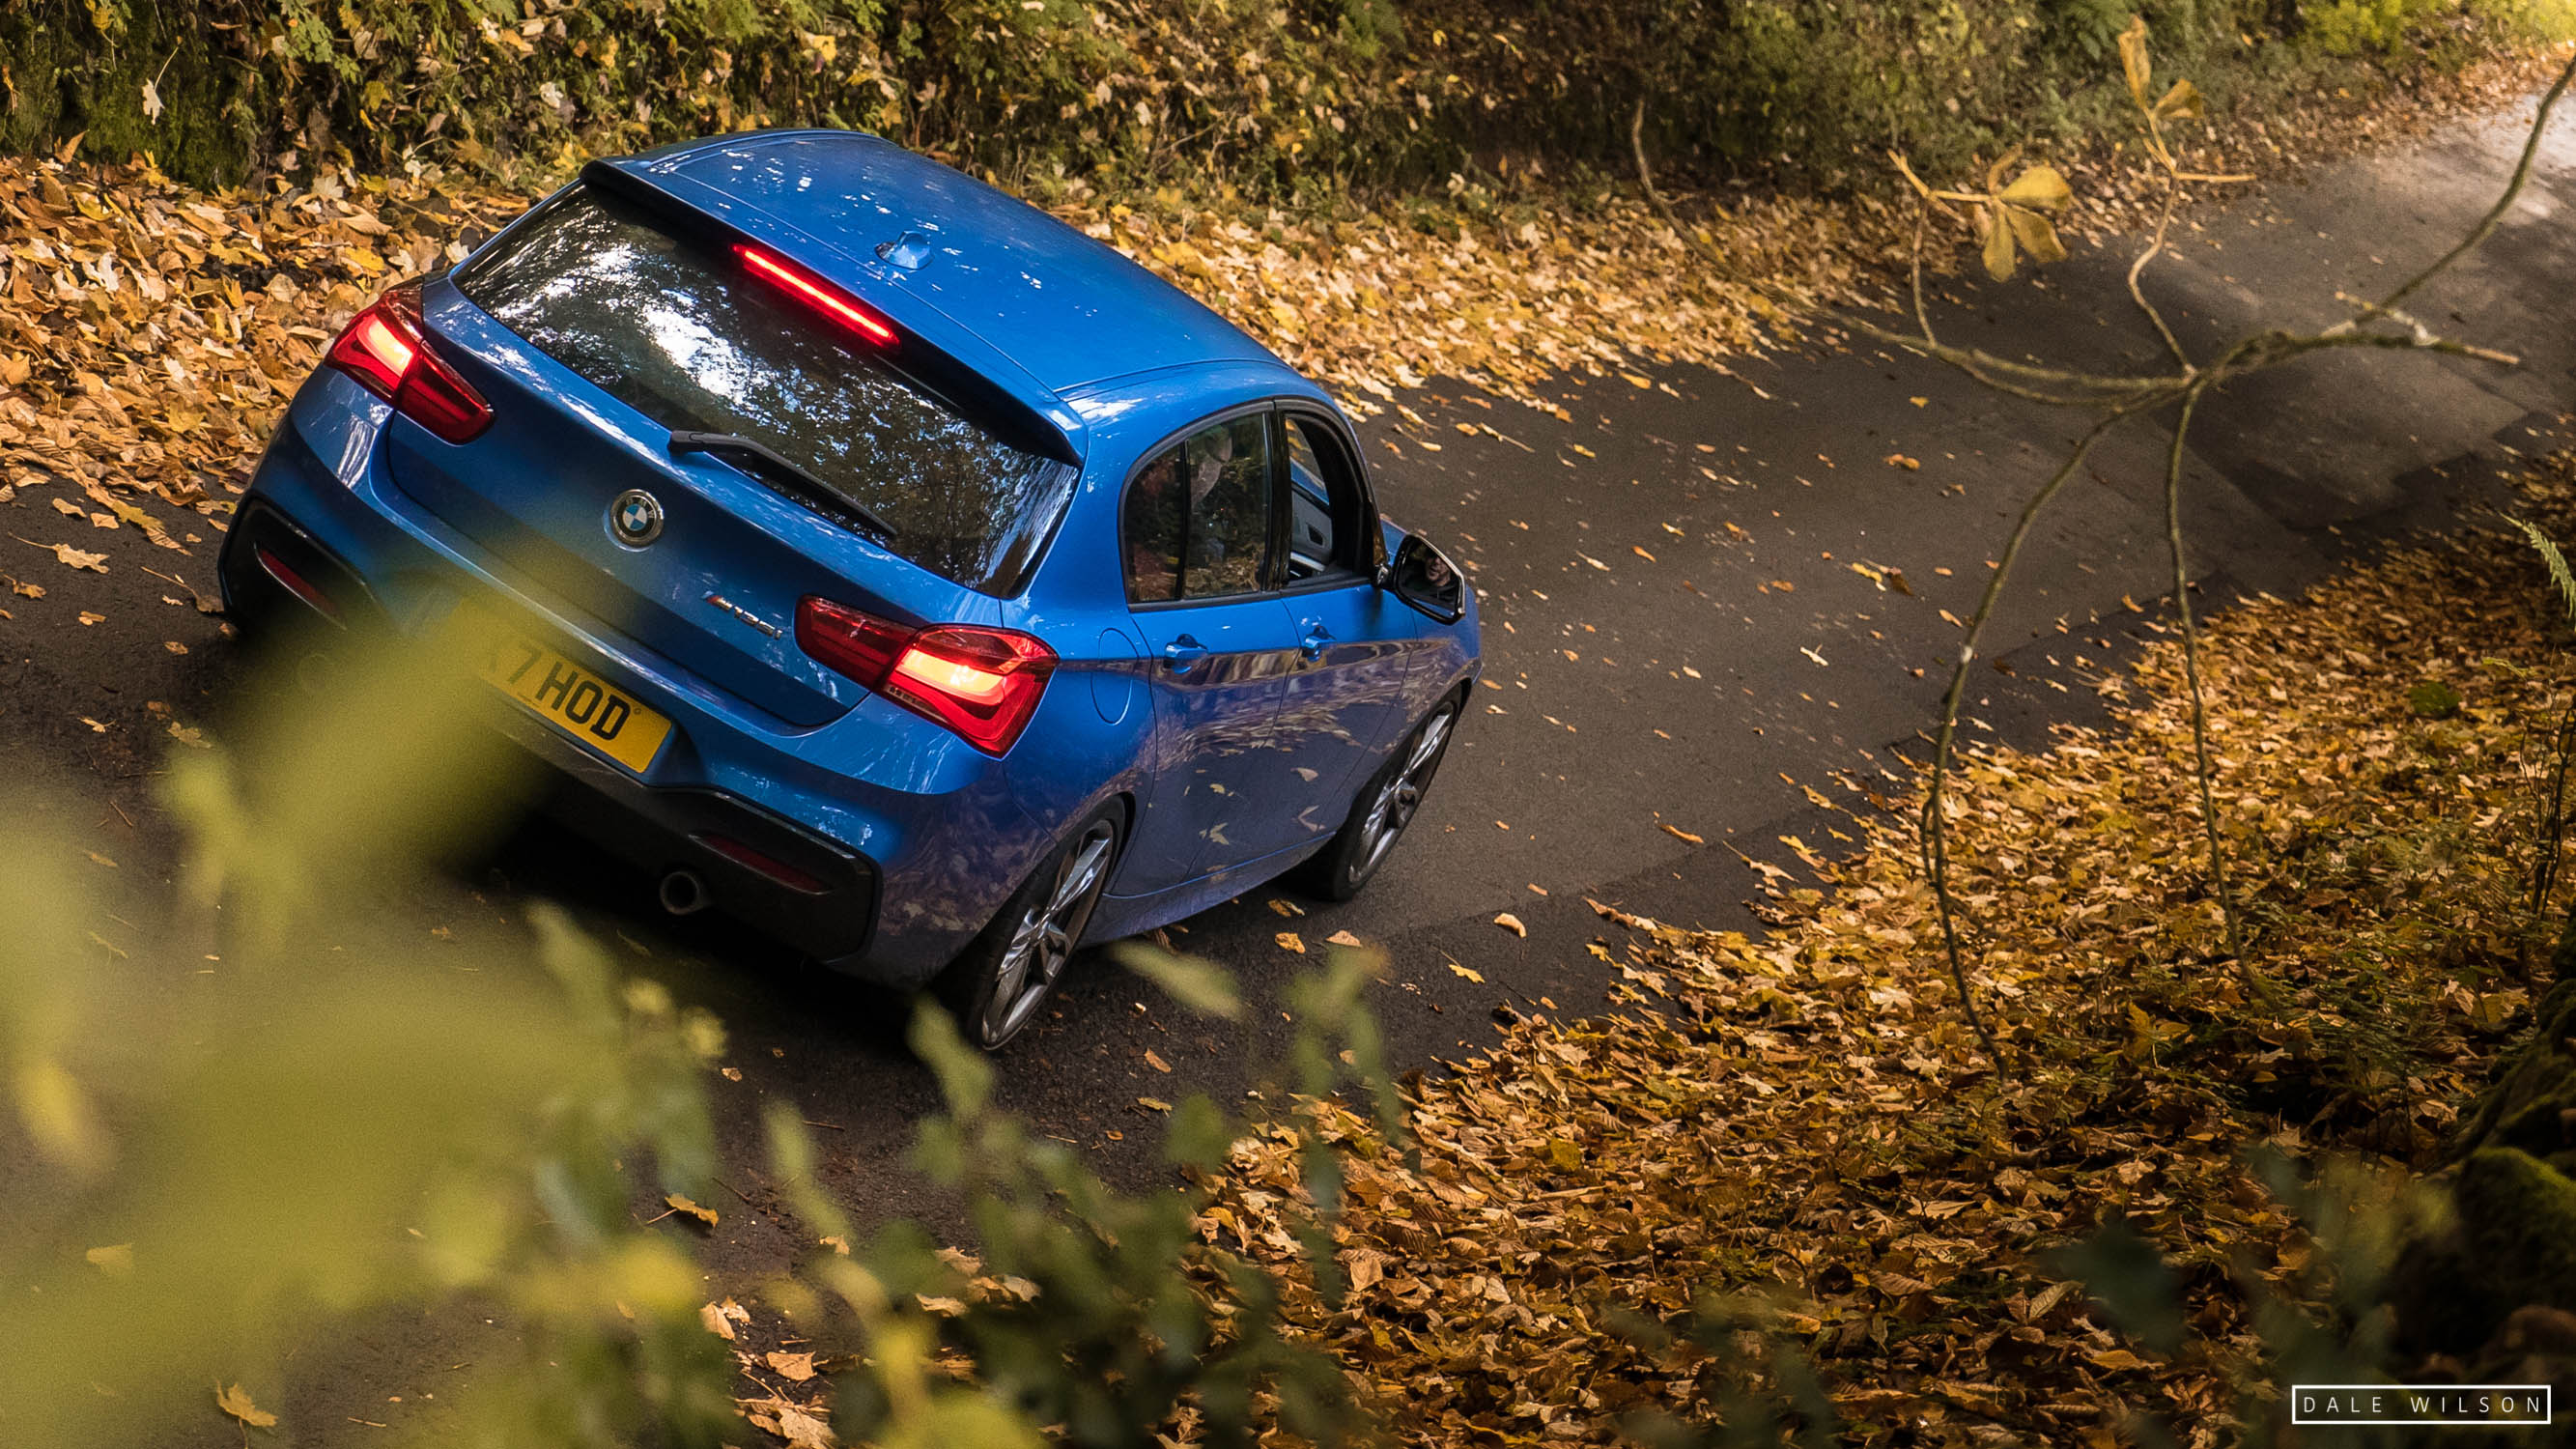 An Estoril blue BMW 135i in autumn leaves cumbria